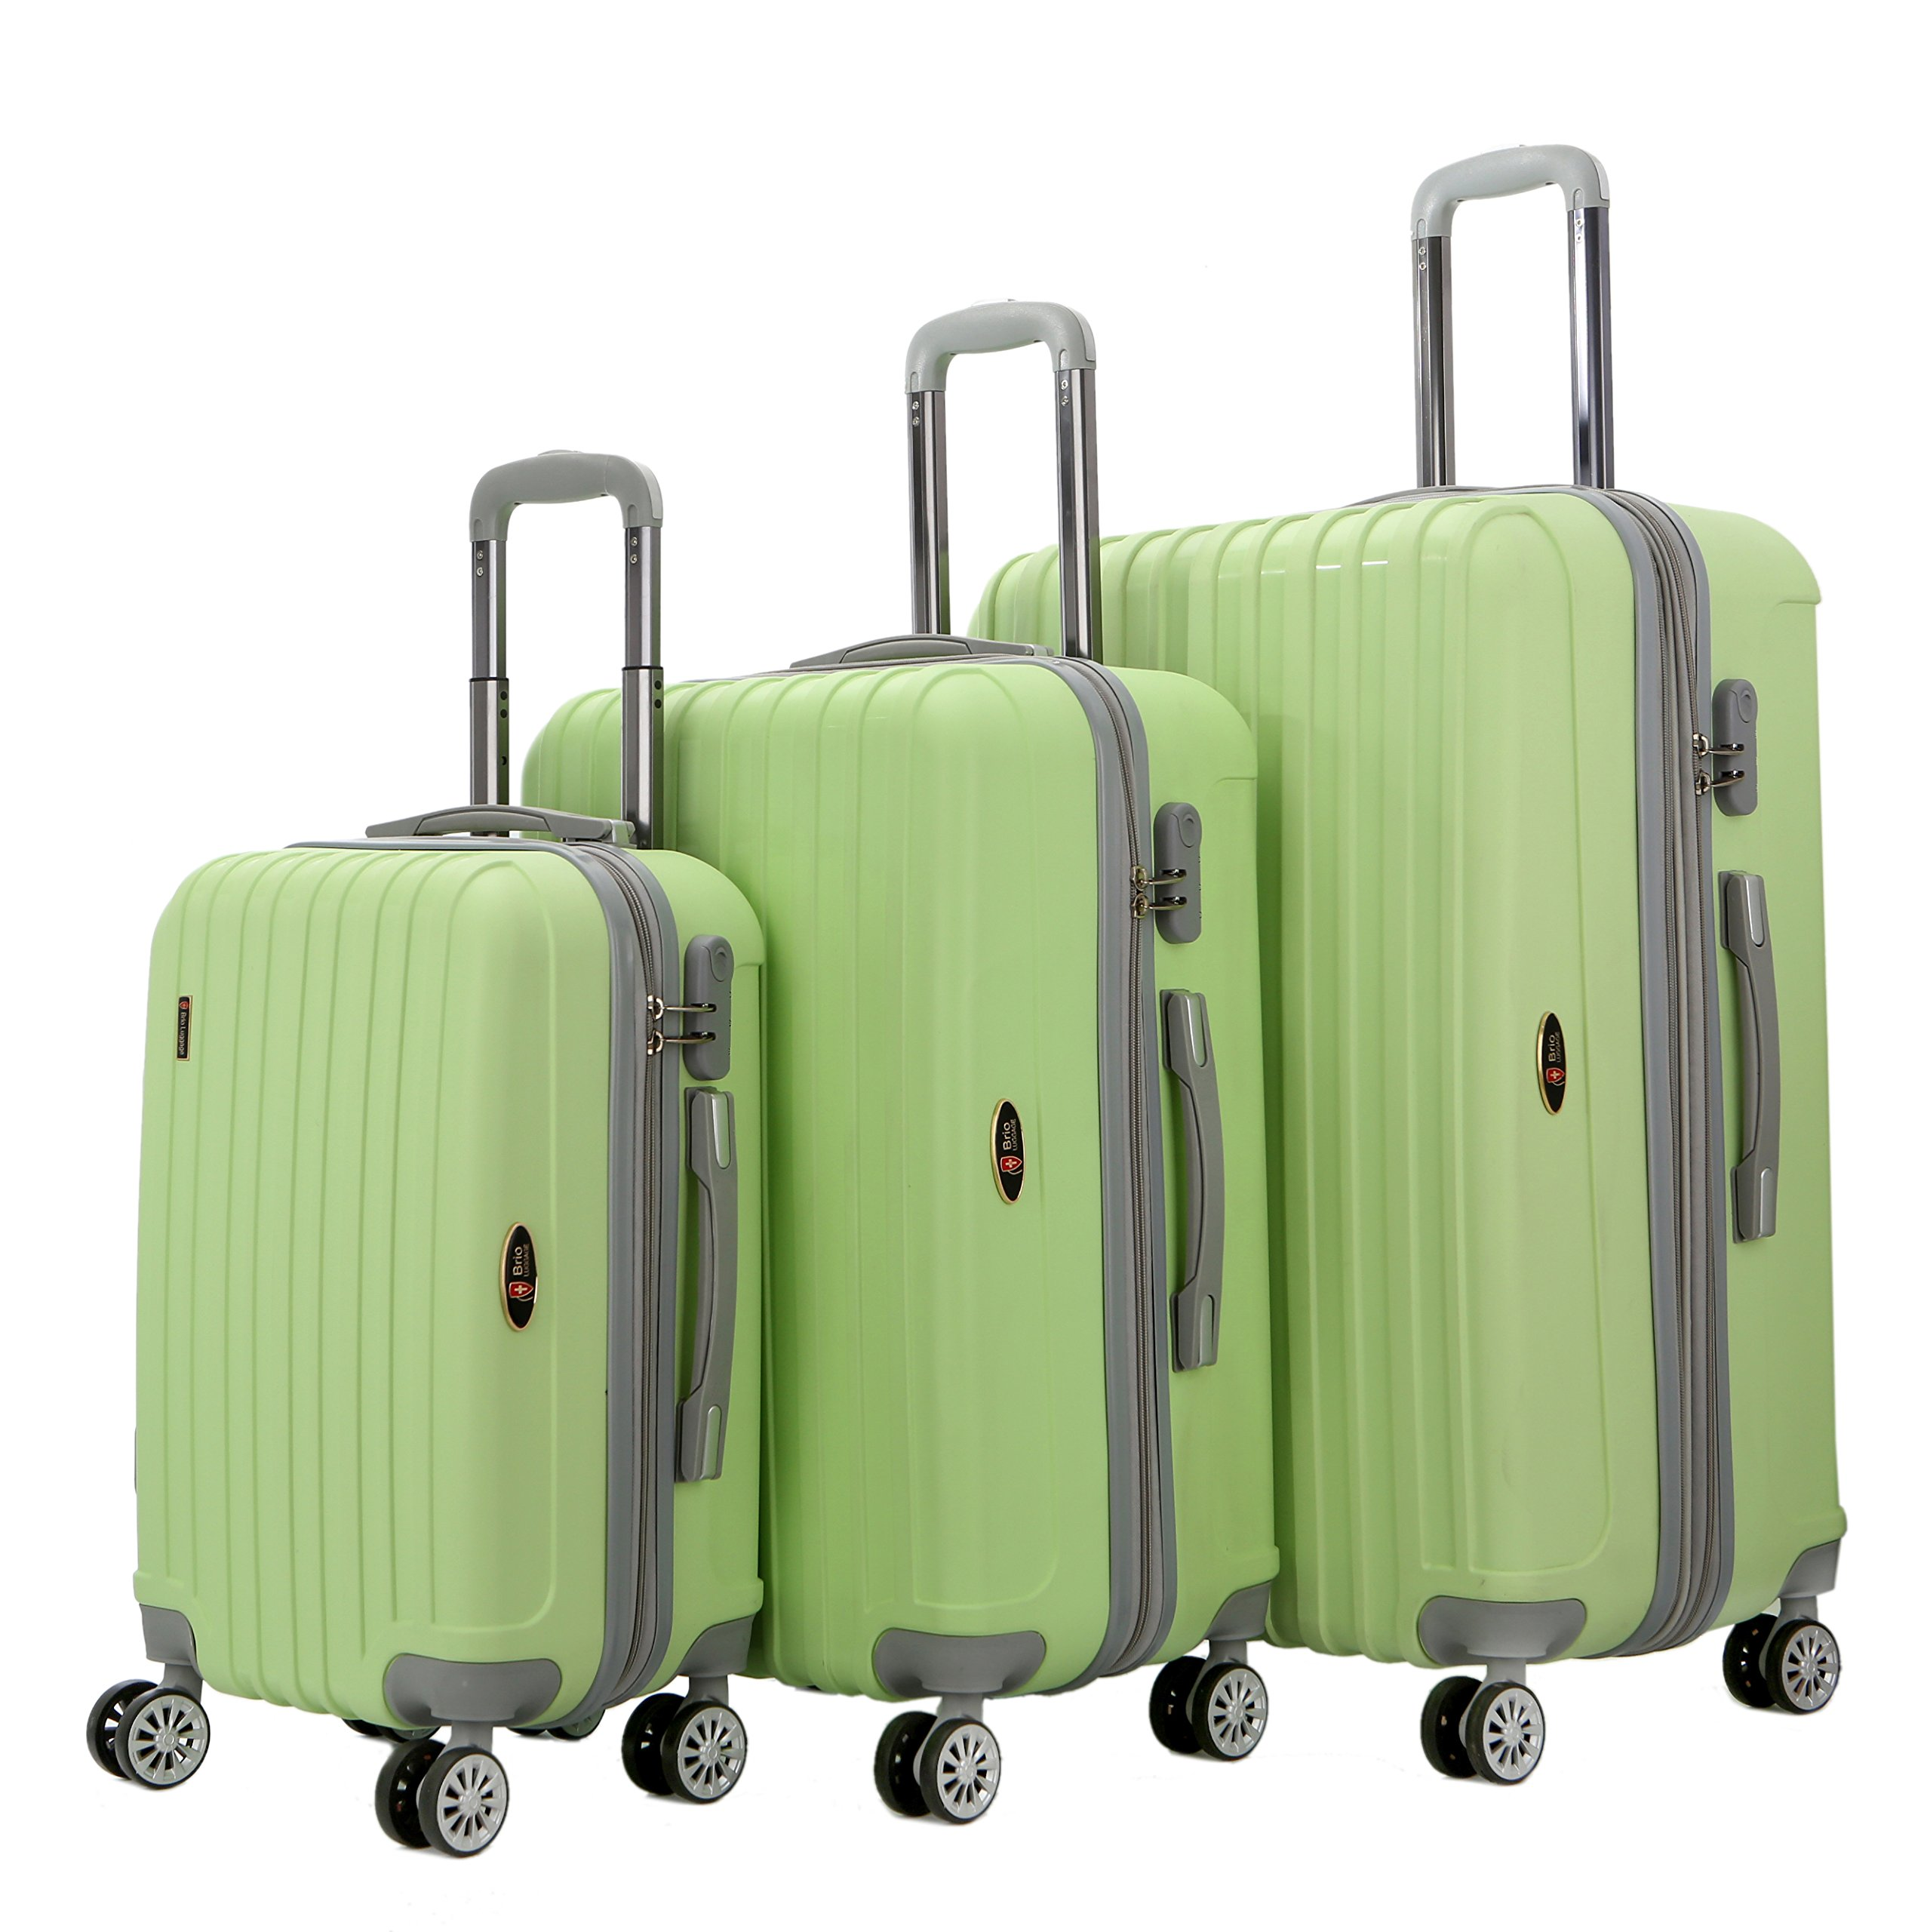 Brio Luggage Two-Tone PP Thick-Ribbed Expandable Suitcase Set #PP313 (Green / Gray)